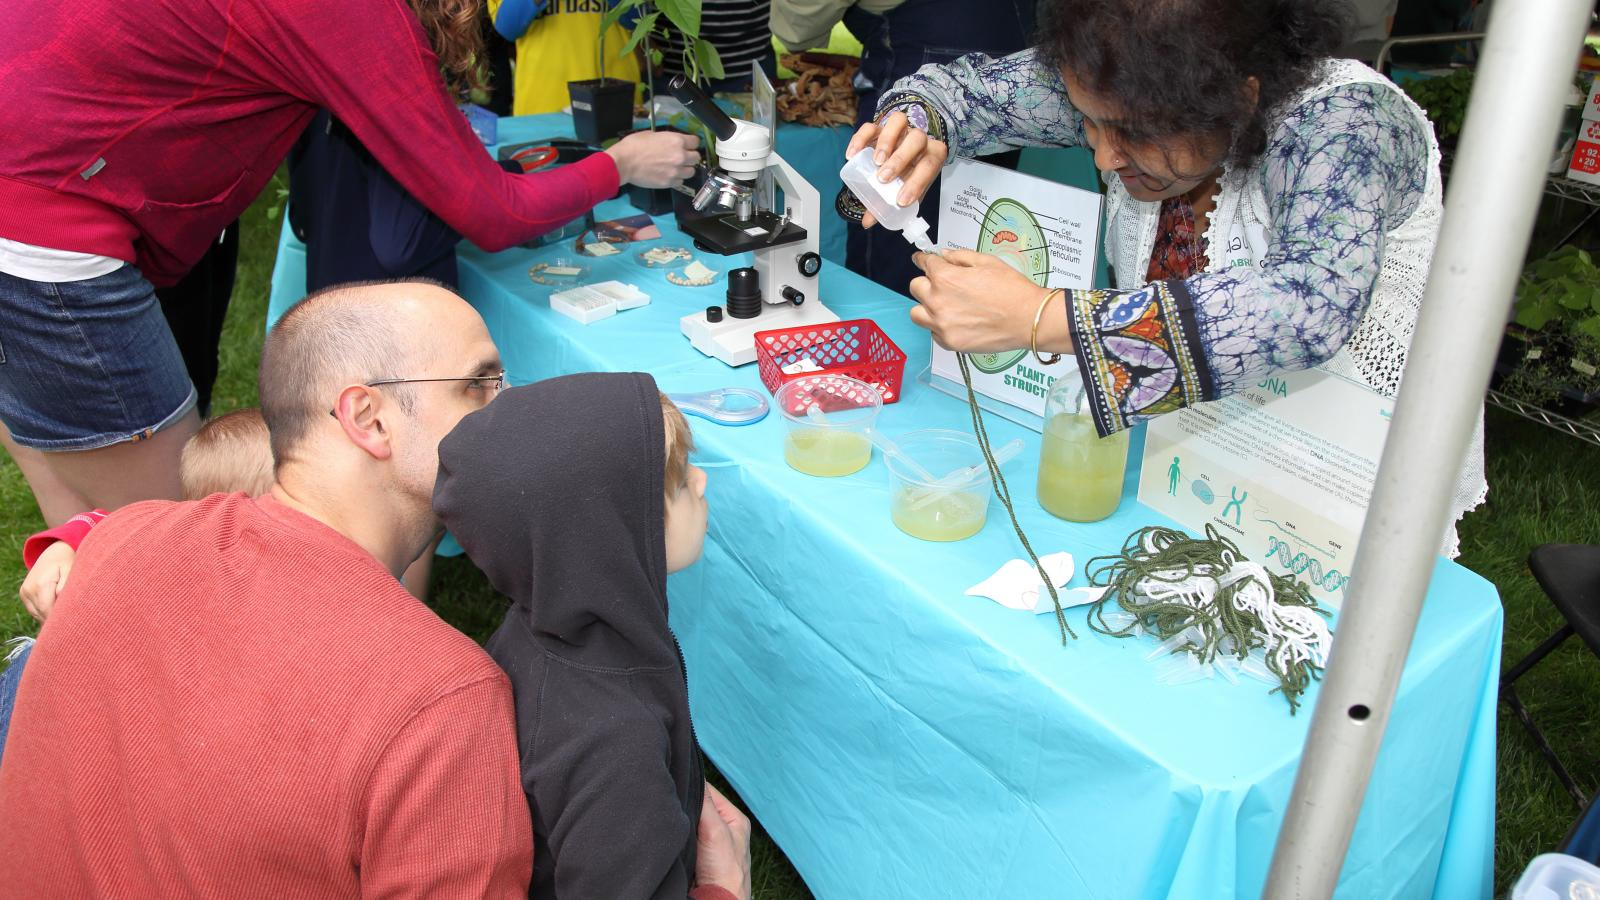 ABRC's Gauri Datta helps a young visitor extract DNA from applesauce